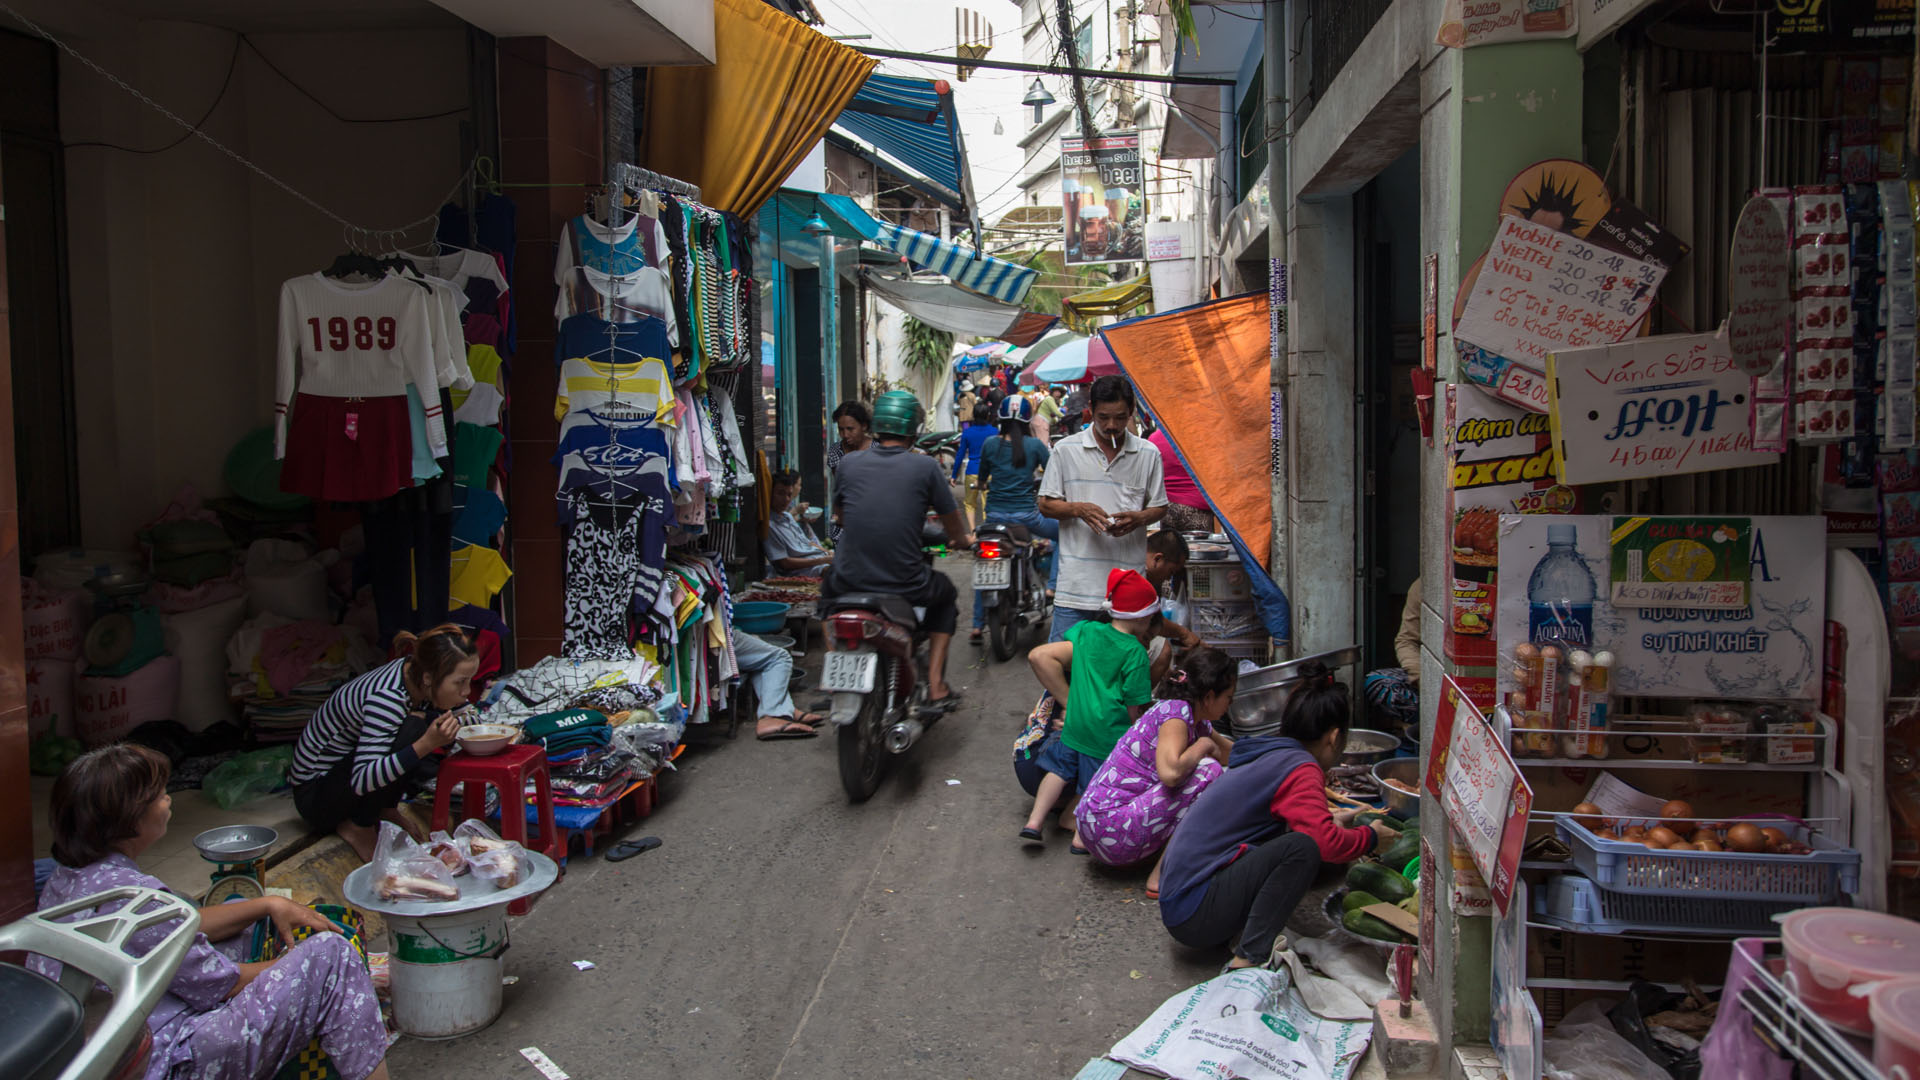 Streets and Laneways of Ho Chi Minh City